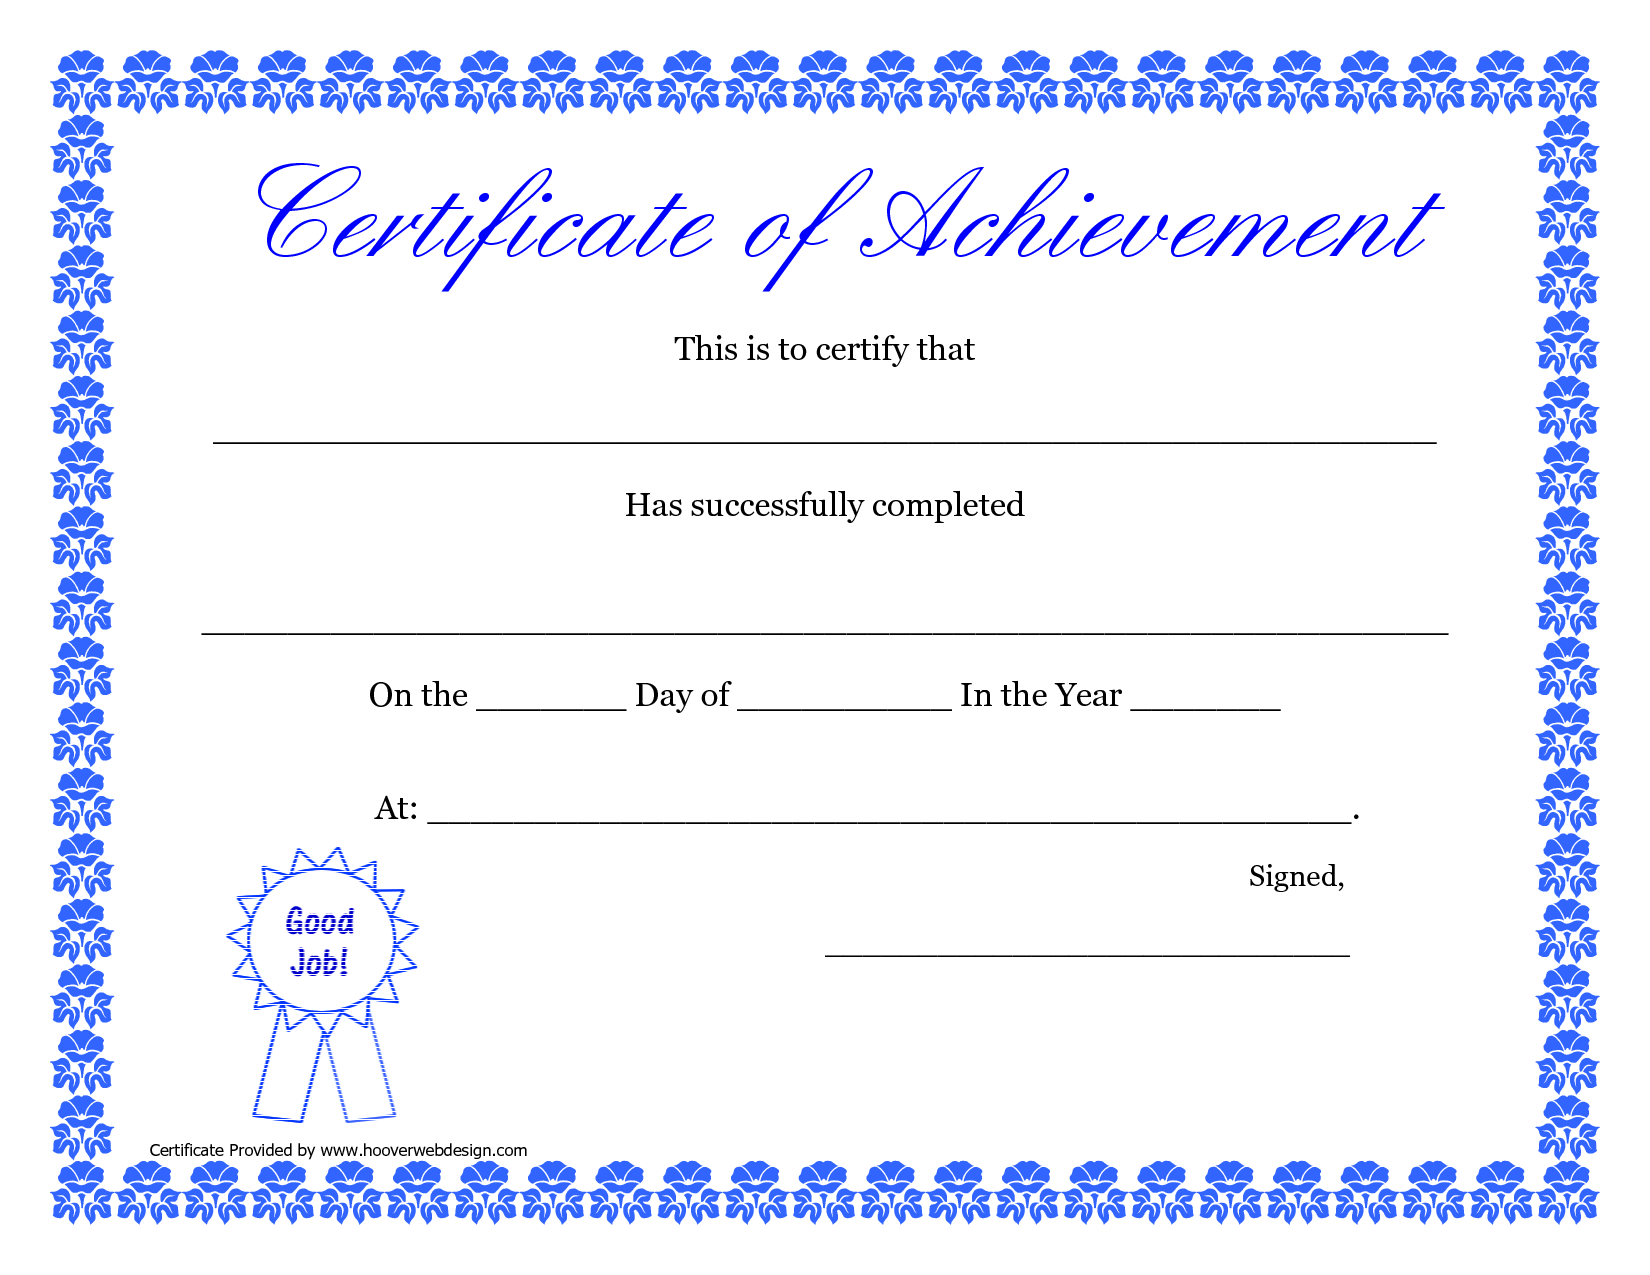 Printable hard work certificates kids printable certificate of certificate template doc printable gift certificates word business plan templates achievement best free home design idea inspiration yelopaper